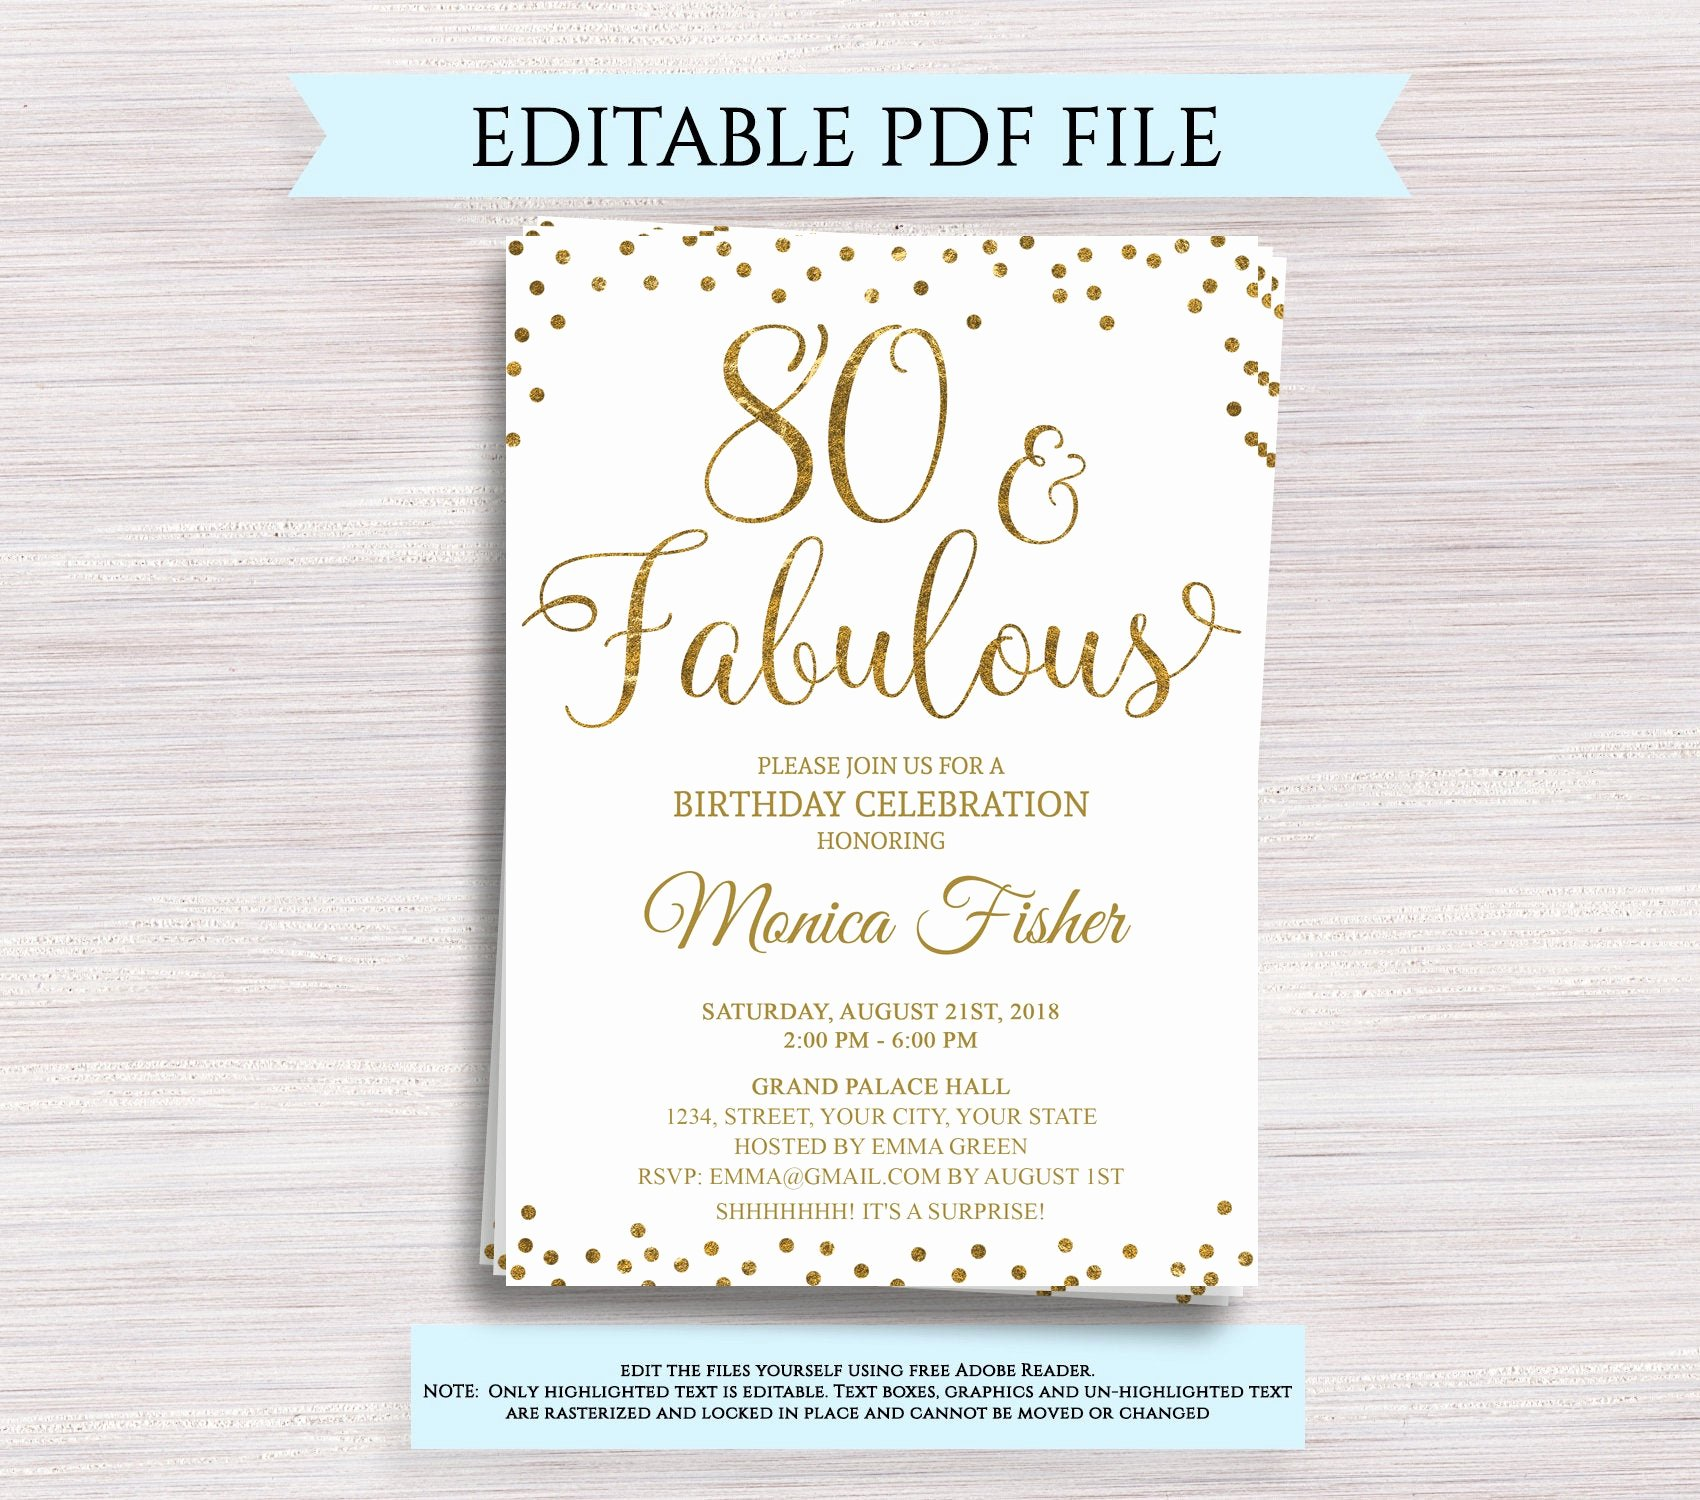 80th Birthday Invitation Templates Lovely Editable 80th Birthday Party Invitation Template 80 and